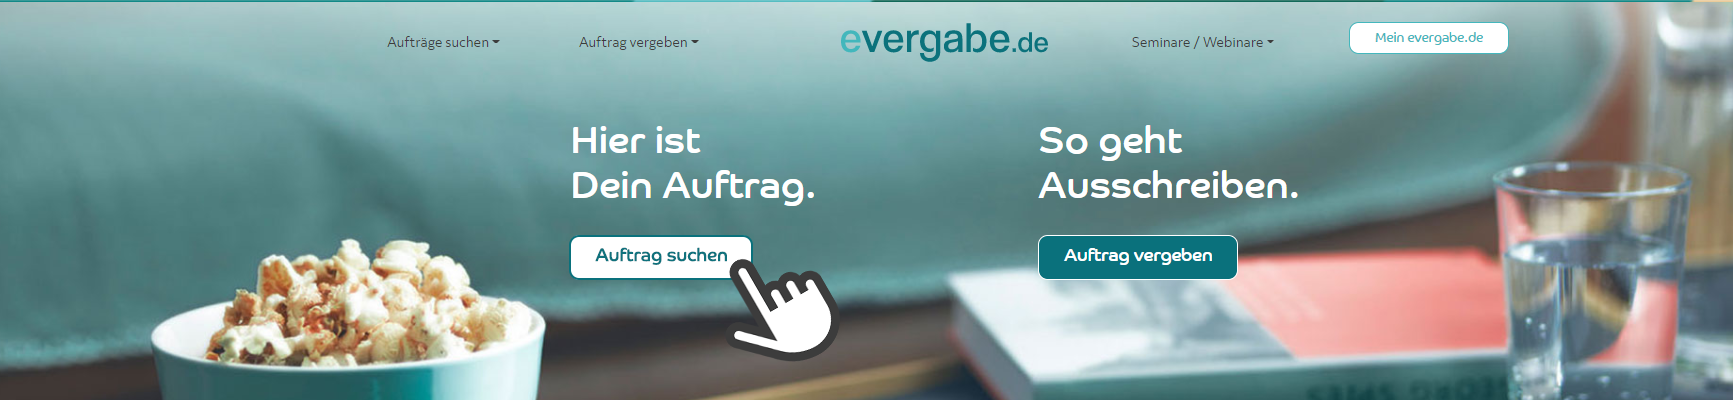 screen-start-evergabe-de-NEU.png